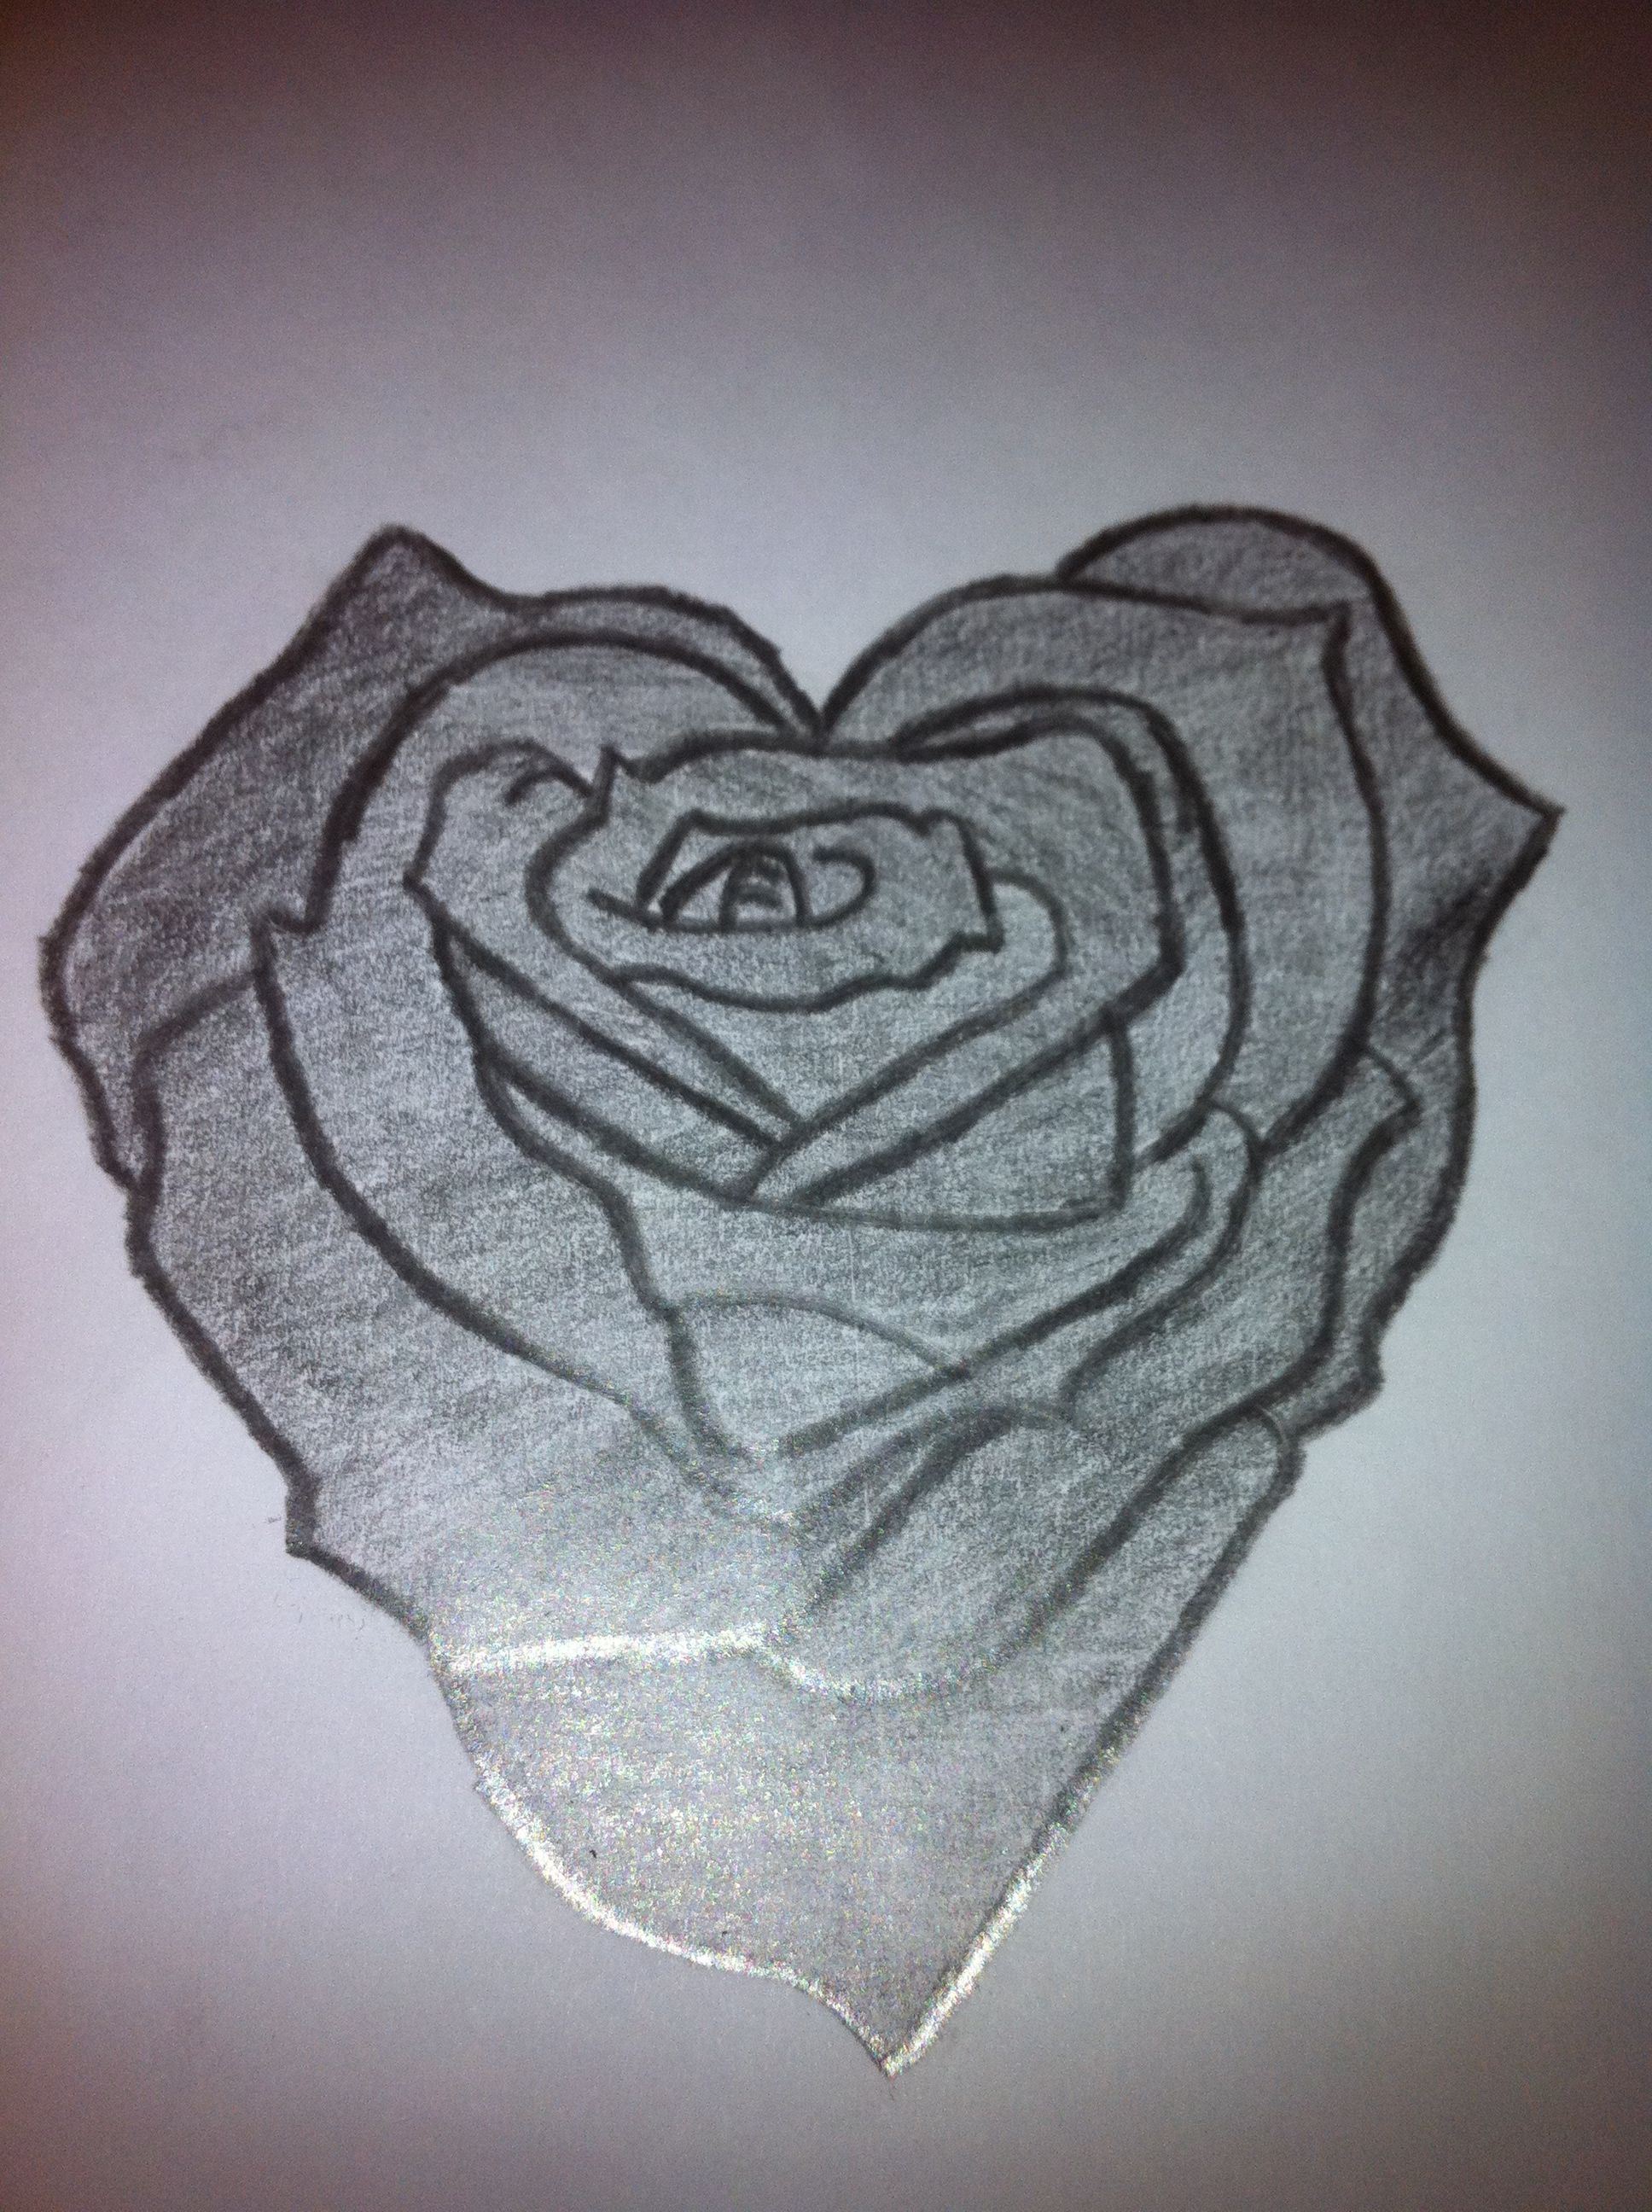 Pencil drawings of hearts love heart shaped rose drawing